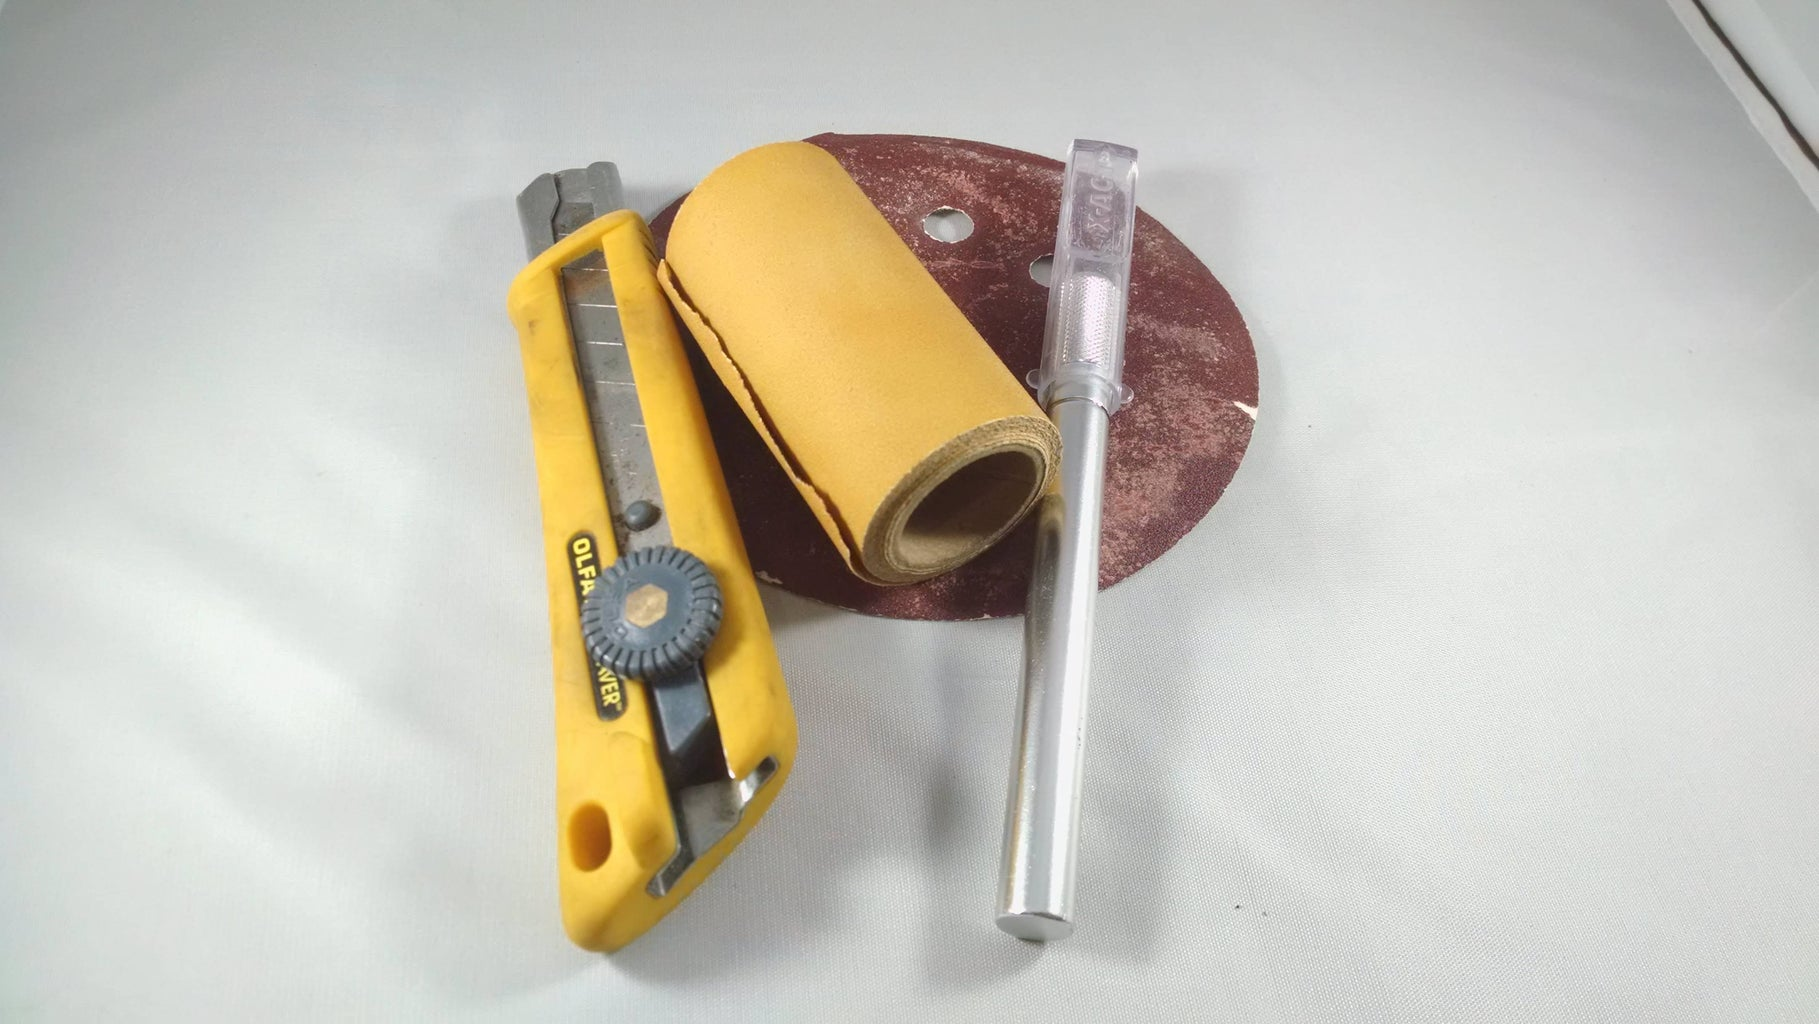 Tools, Materials, Safety Stuff